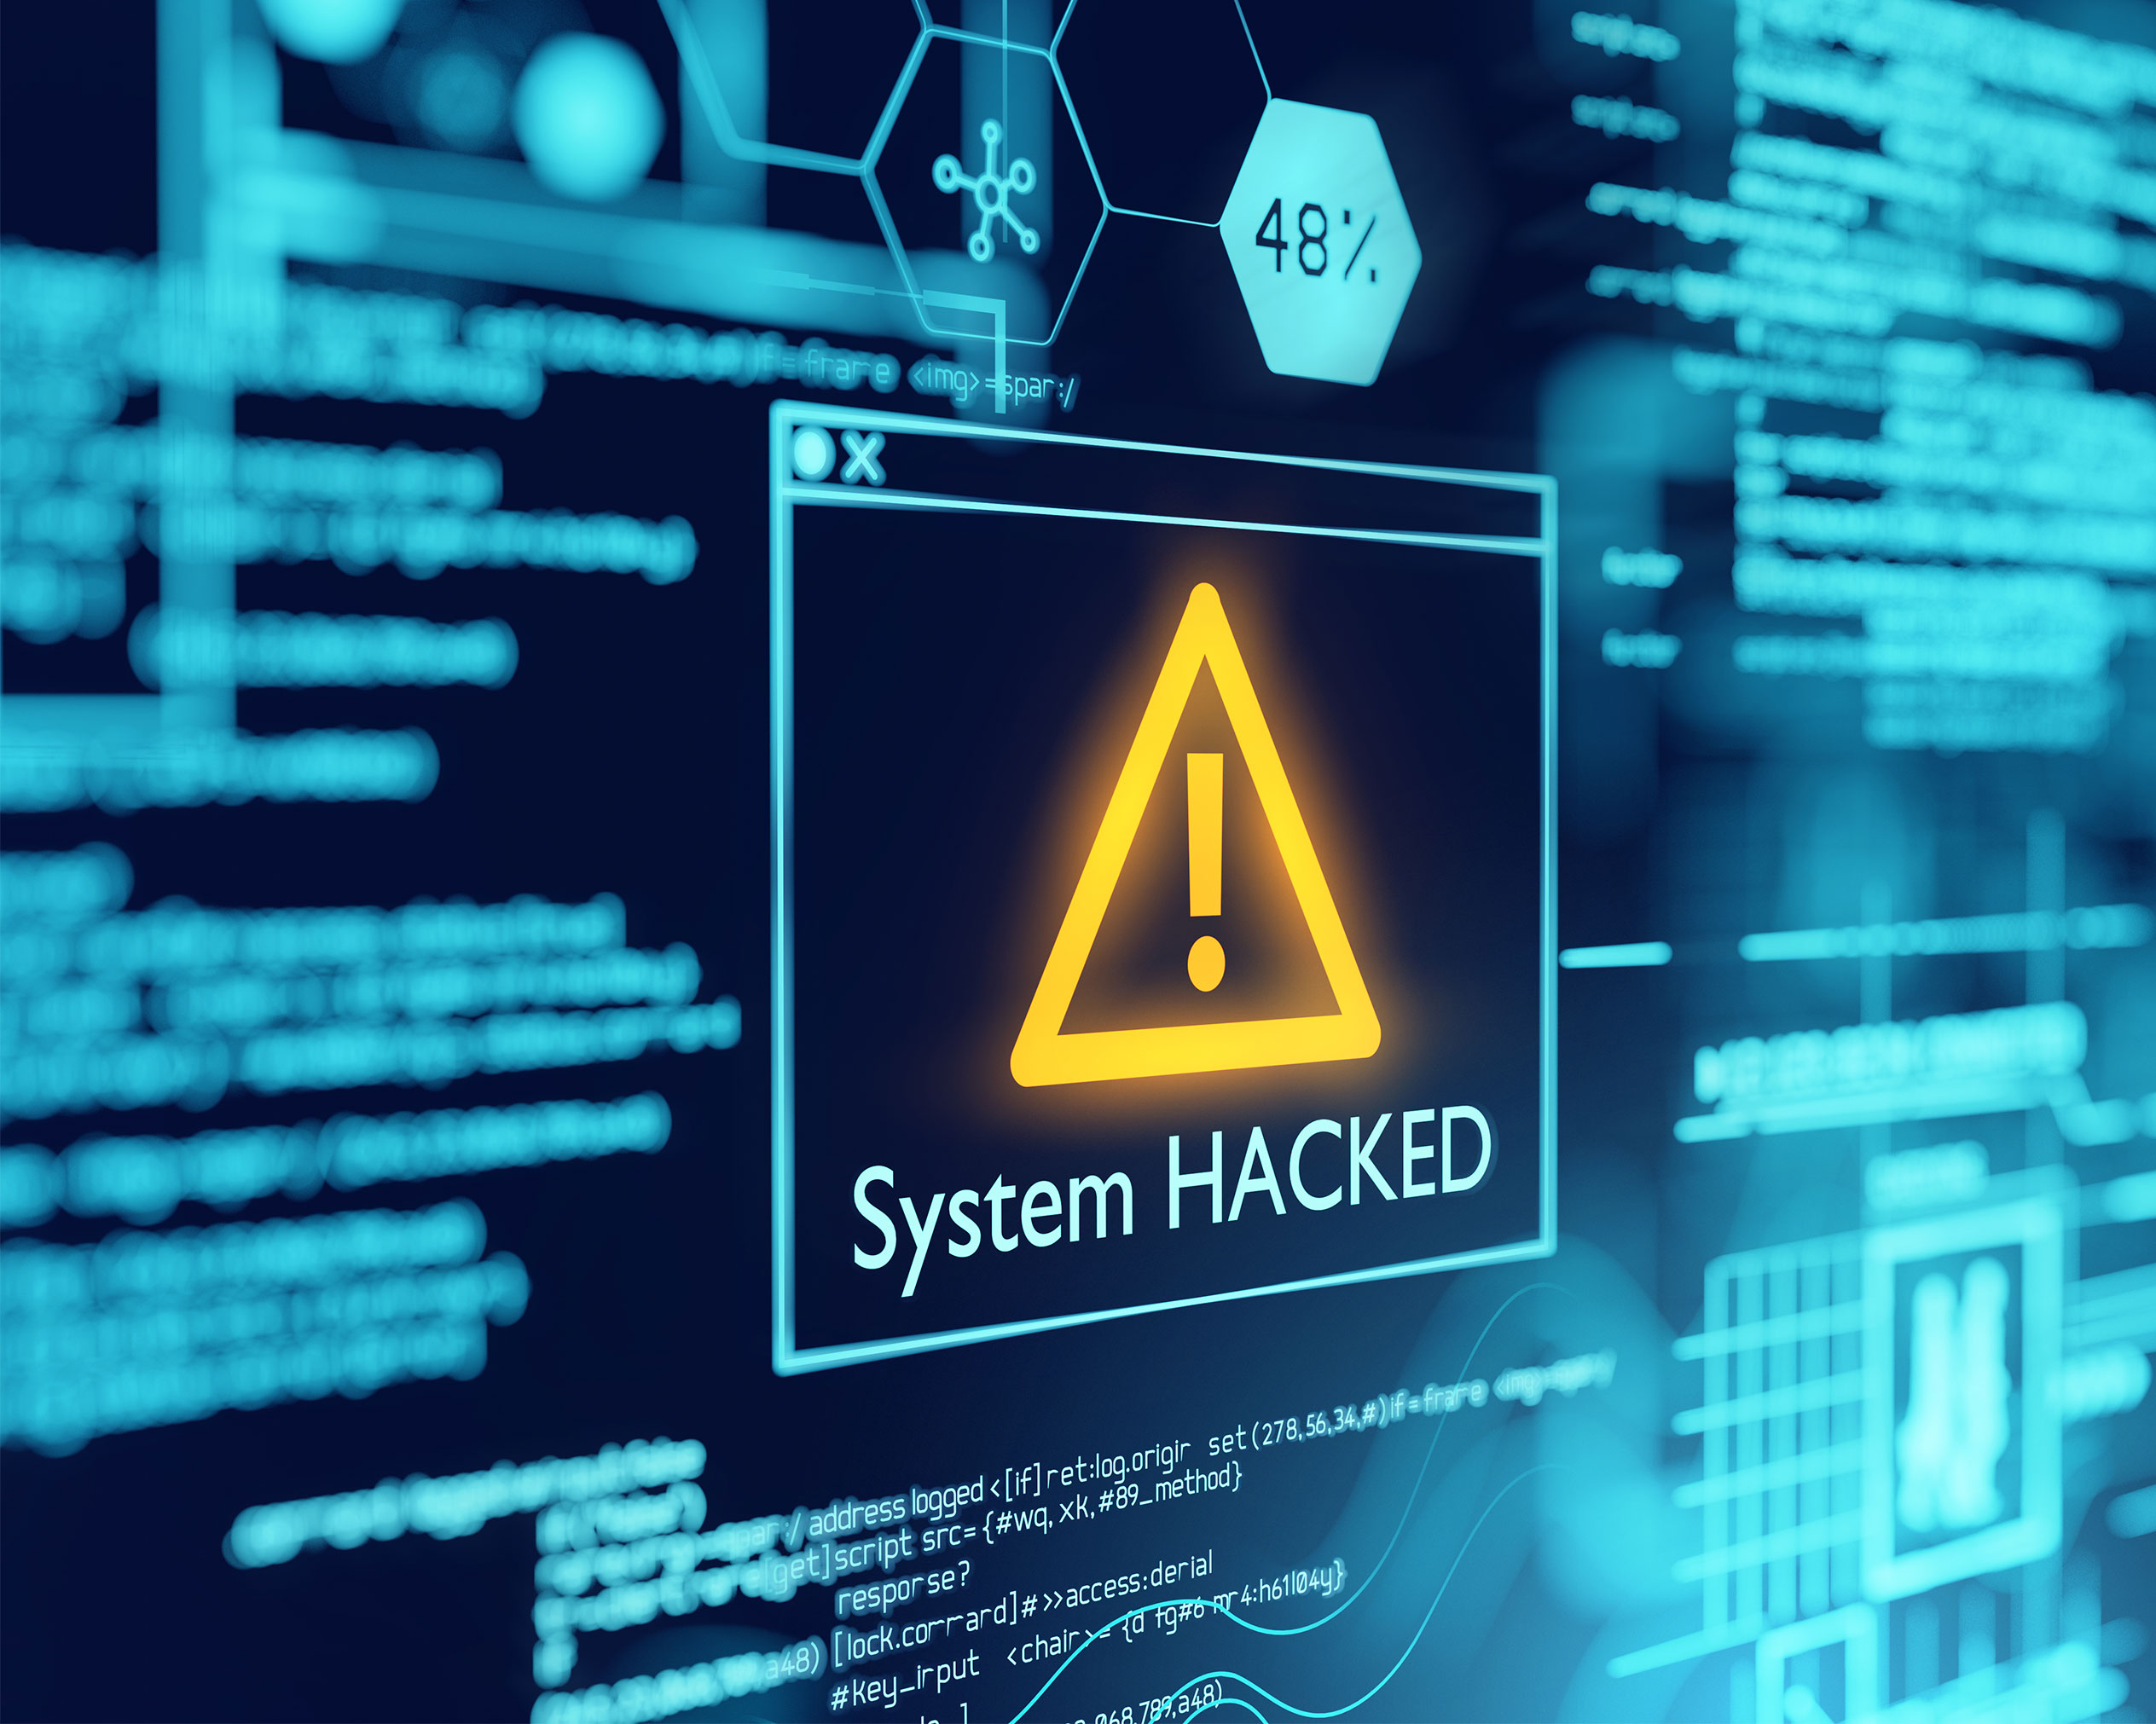 """A yellow warning symbol (triangle with exclamation mark) and the words """"System HACKED"""" on a dark blue screen with light blue lettering."""